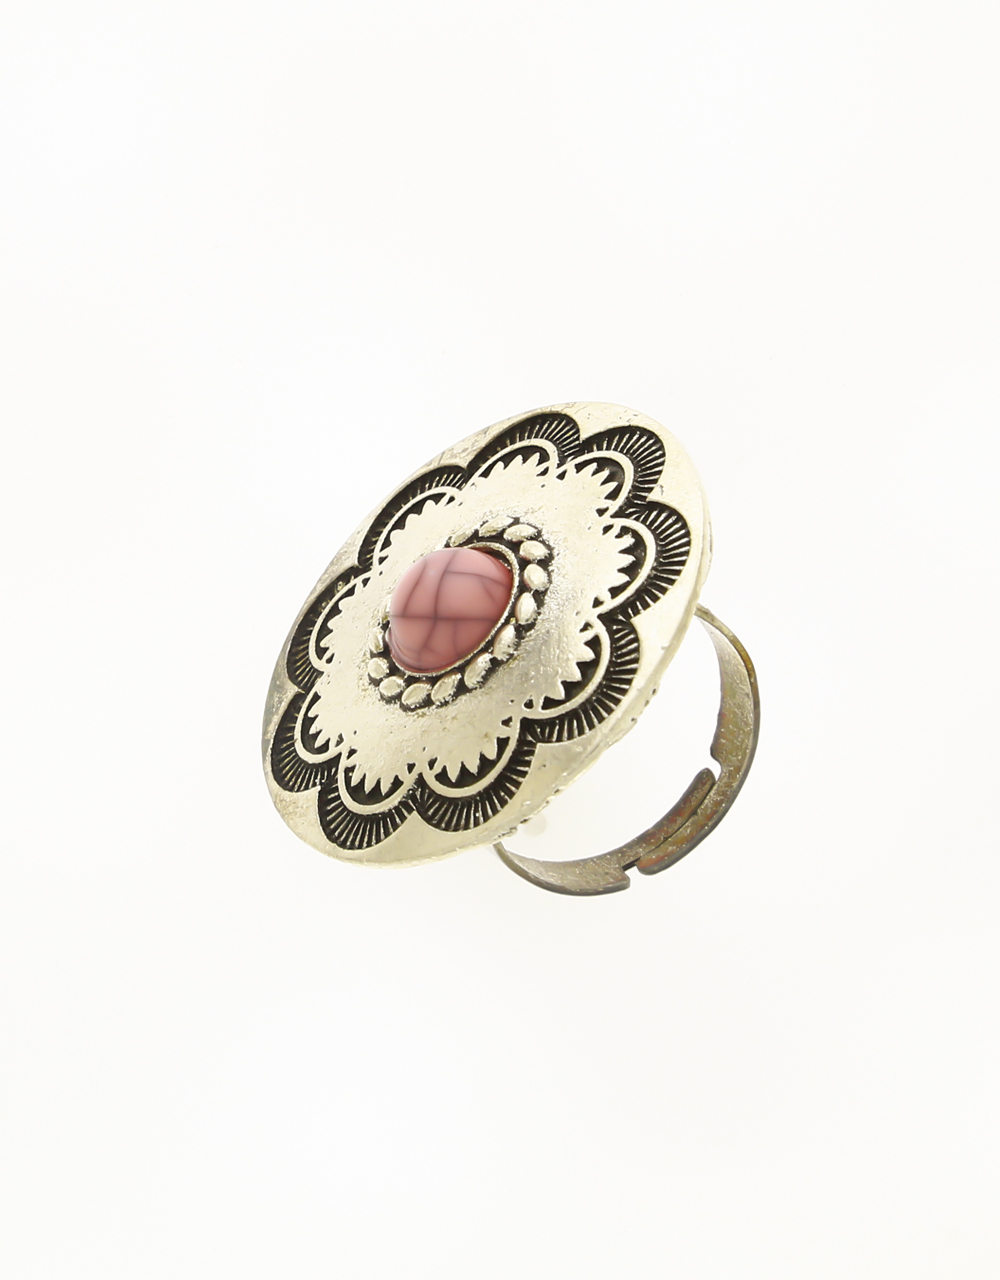 Silver Oxidised Finger Ring Styled with Pink Stone for Women